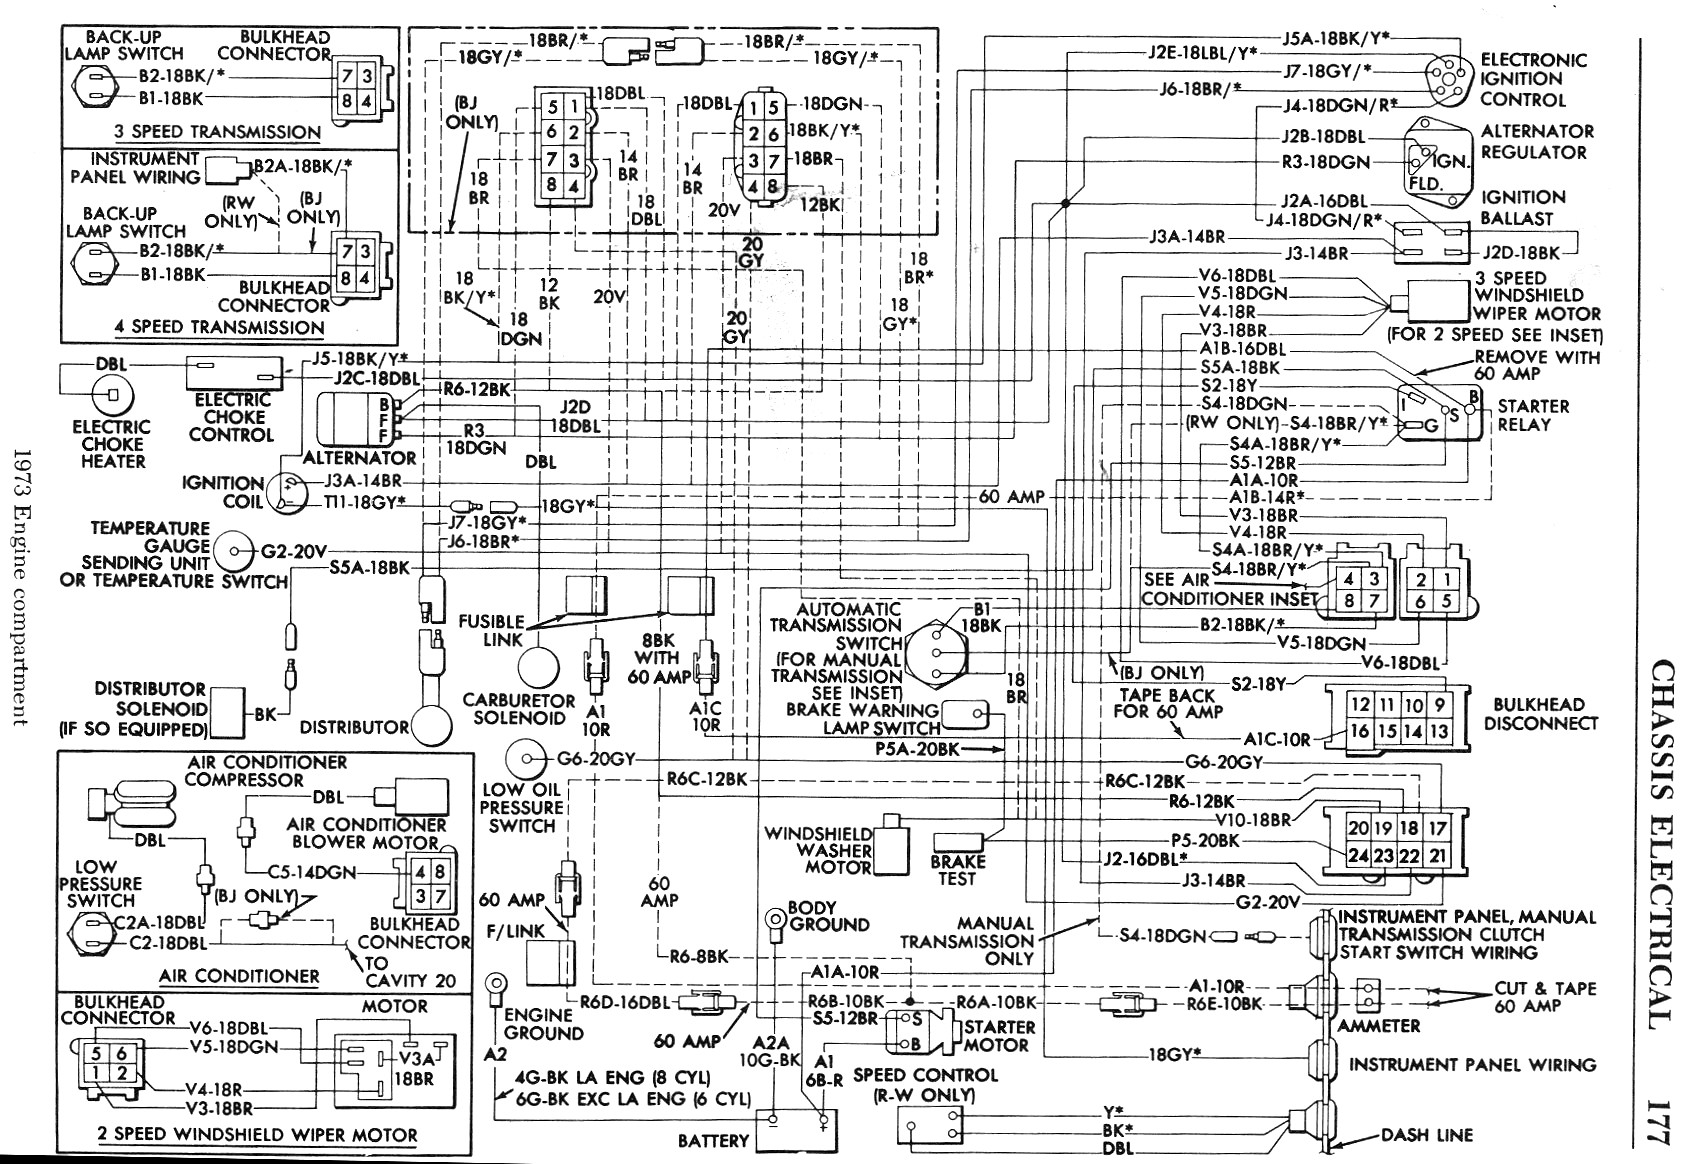 5098823 73B BodyEngineCompartmentWiringDiagram need 1973 duster wiring diagrams please! moparts question and srt4 engine wiring diagram at crackthecode.co